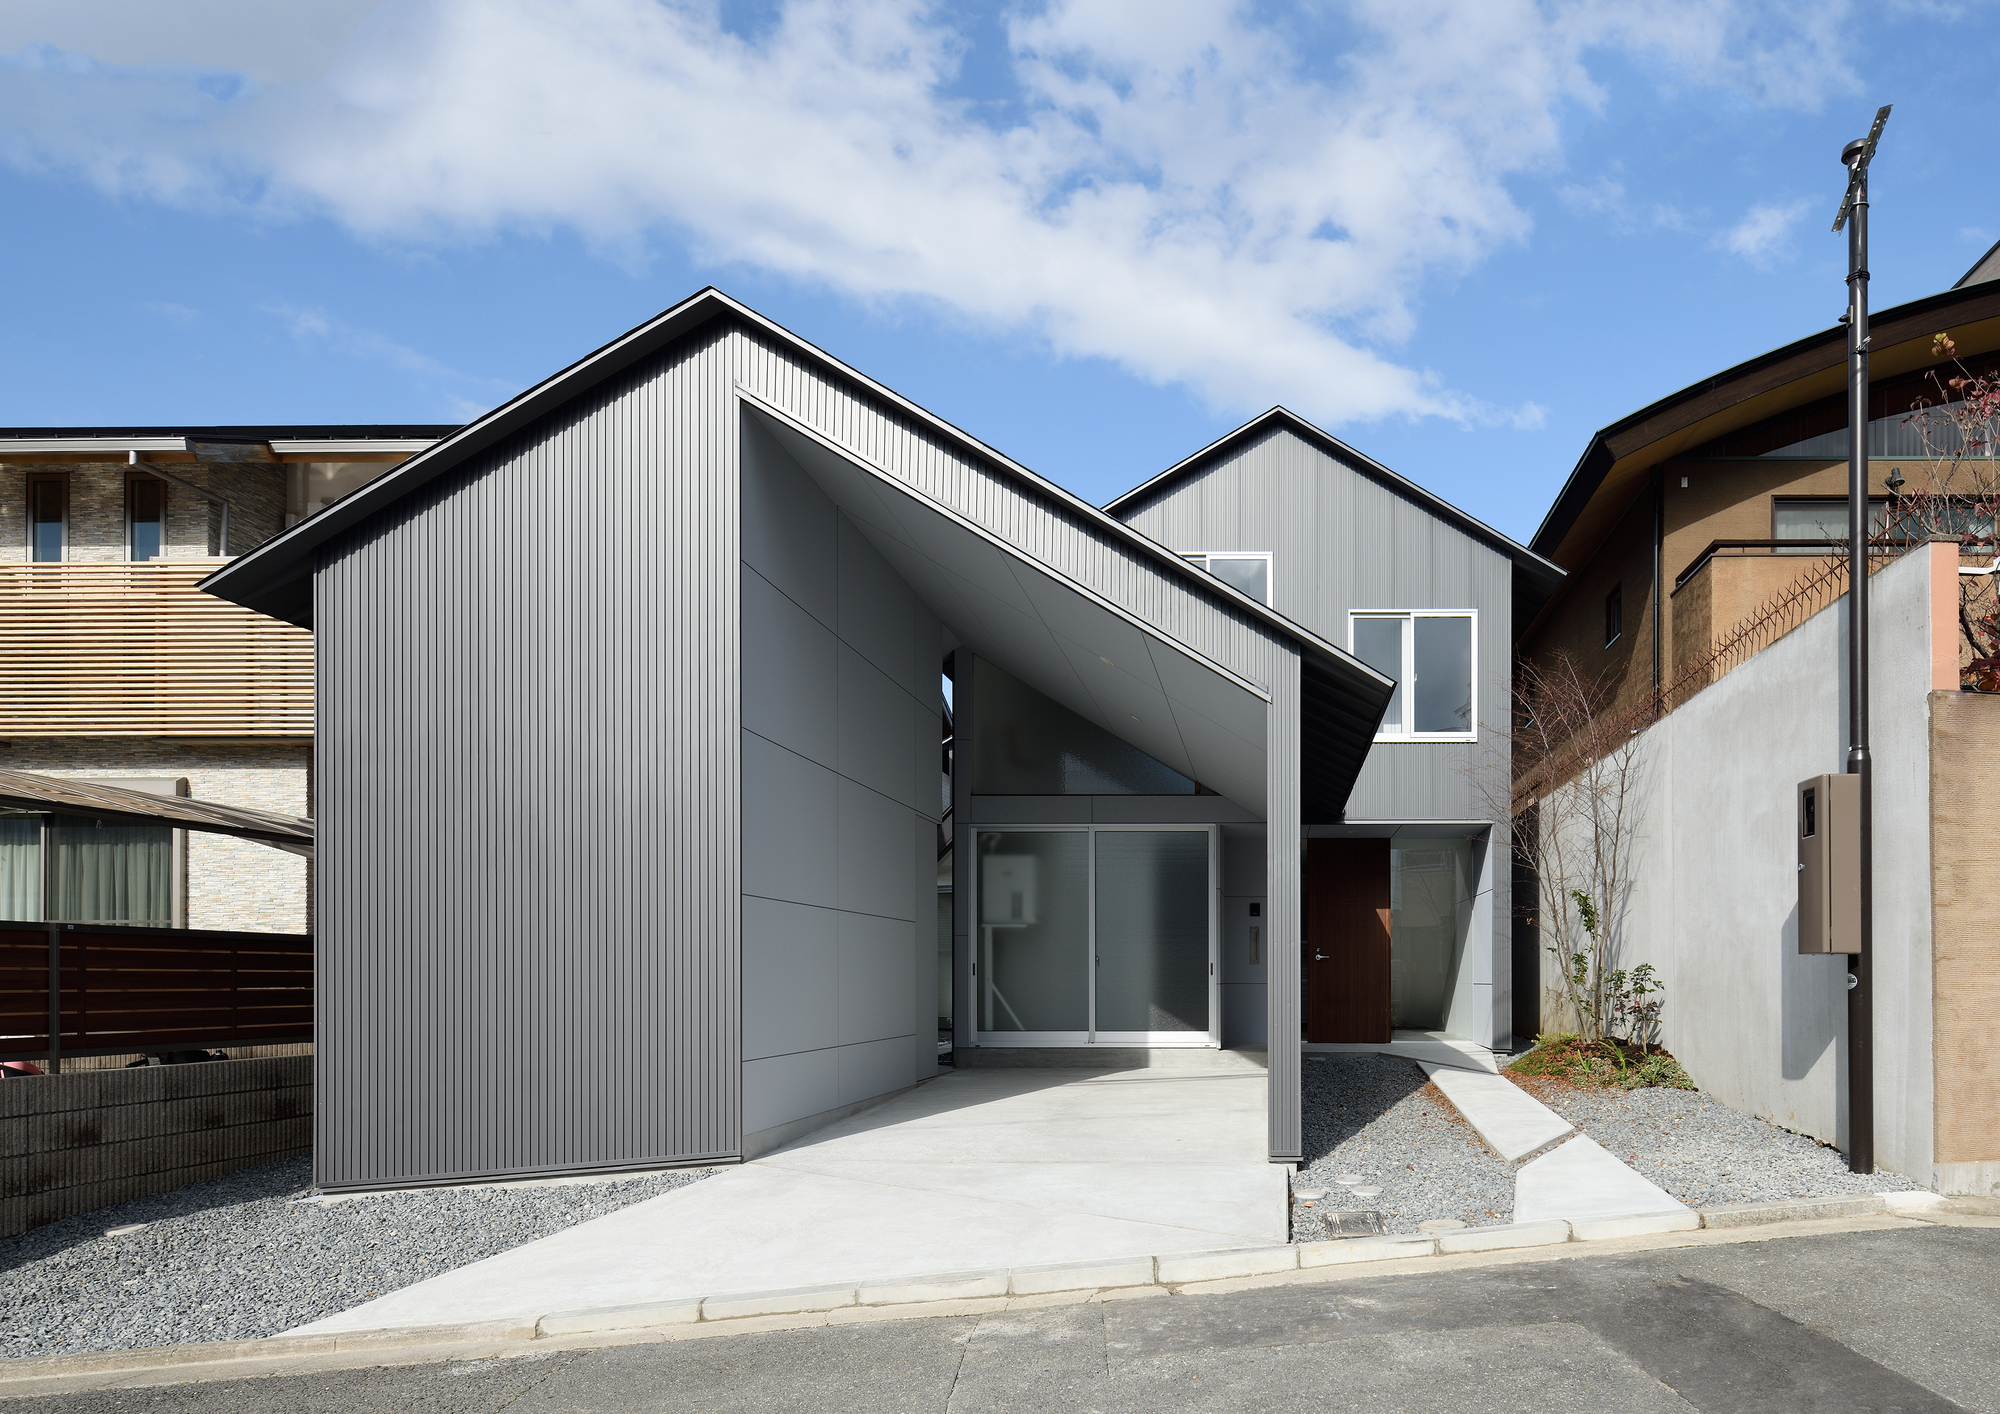 Gable Roof House Alphaville Architects Archdaily